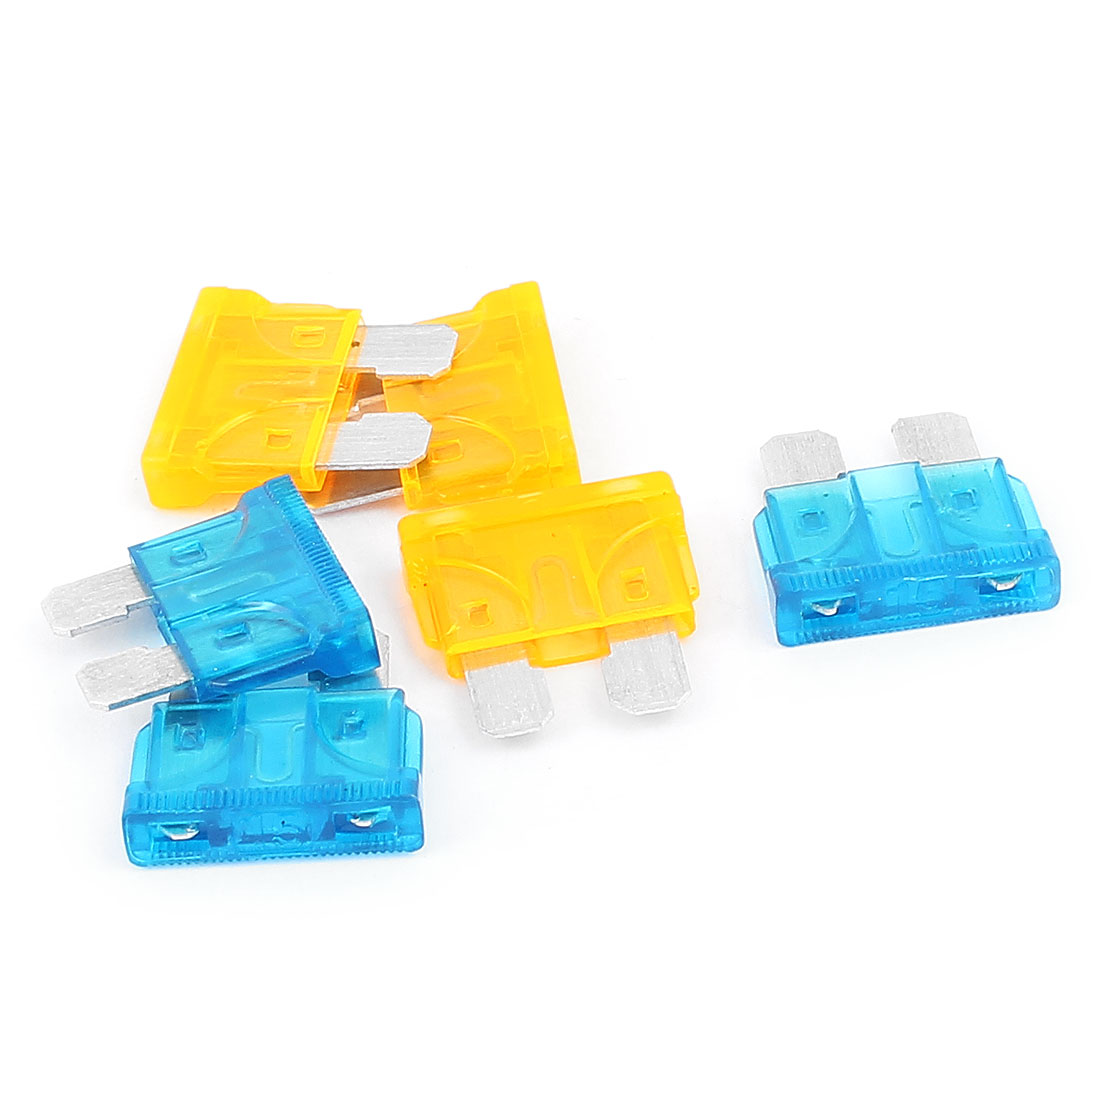 6pcs Blue Orange 15A 5A Plastic Housing ATC ATO Mini Blade Fuses for Car Caravan Truck Auto